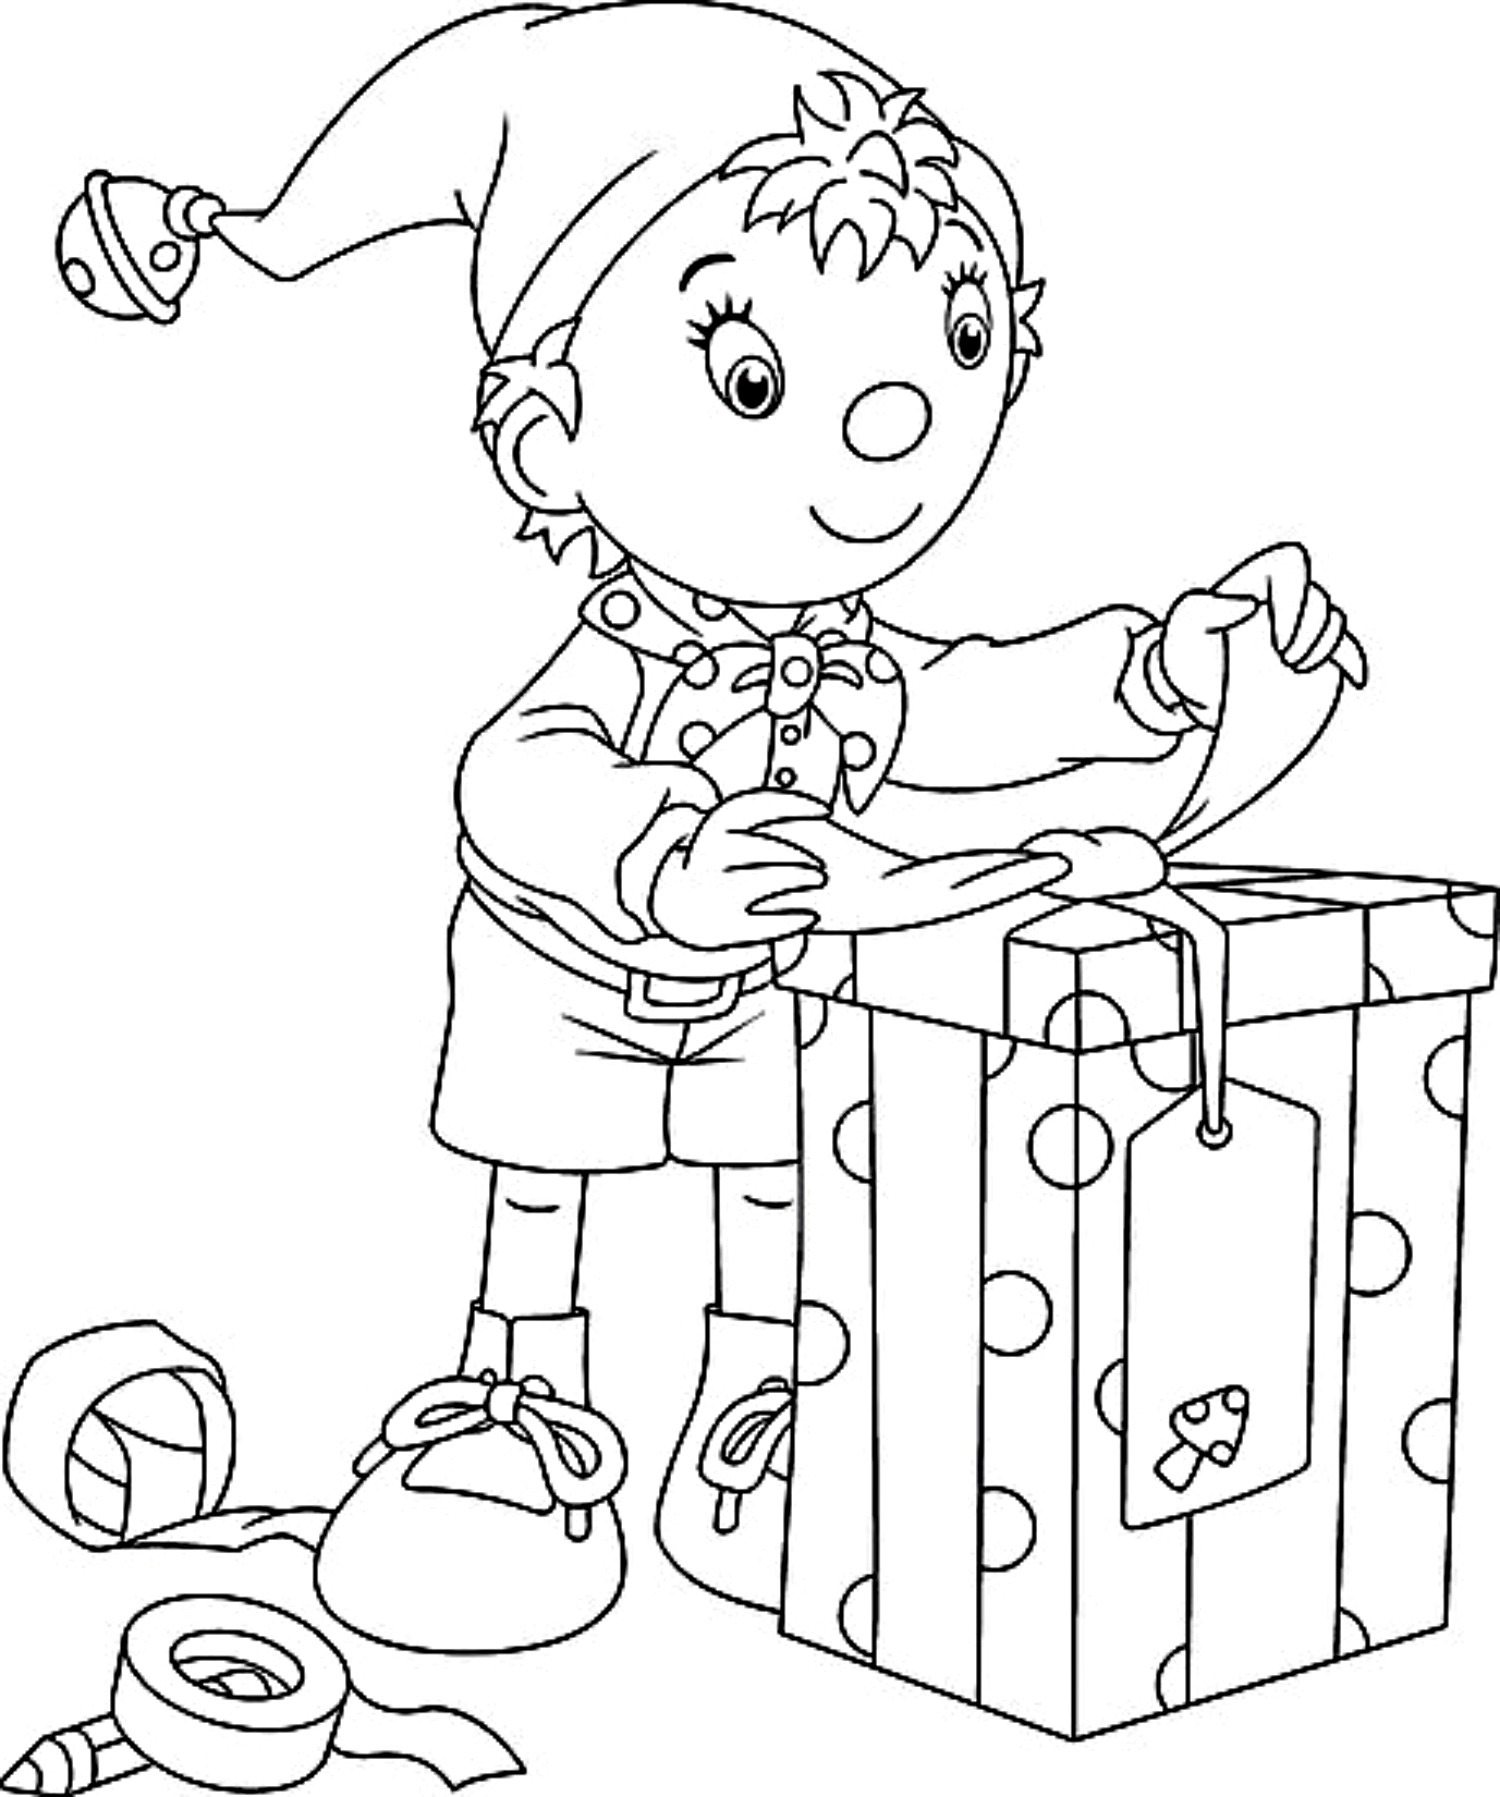 1500x1797 Fresh Free Printable Kindergarten Coloring Pages For Kids